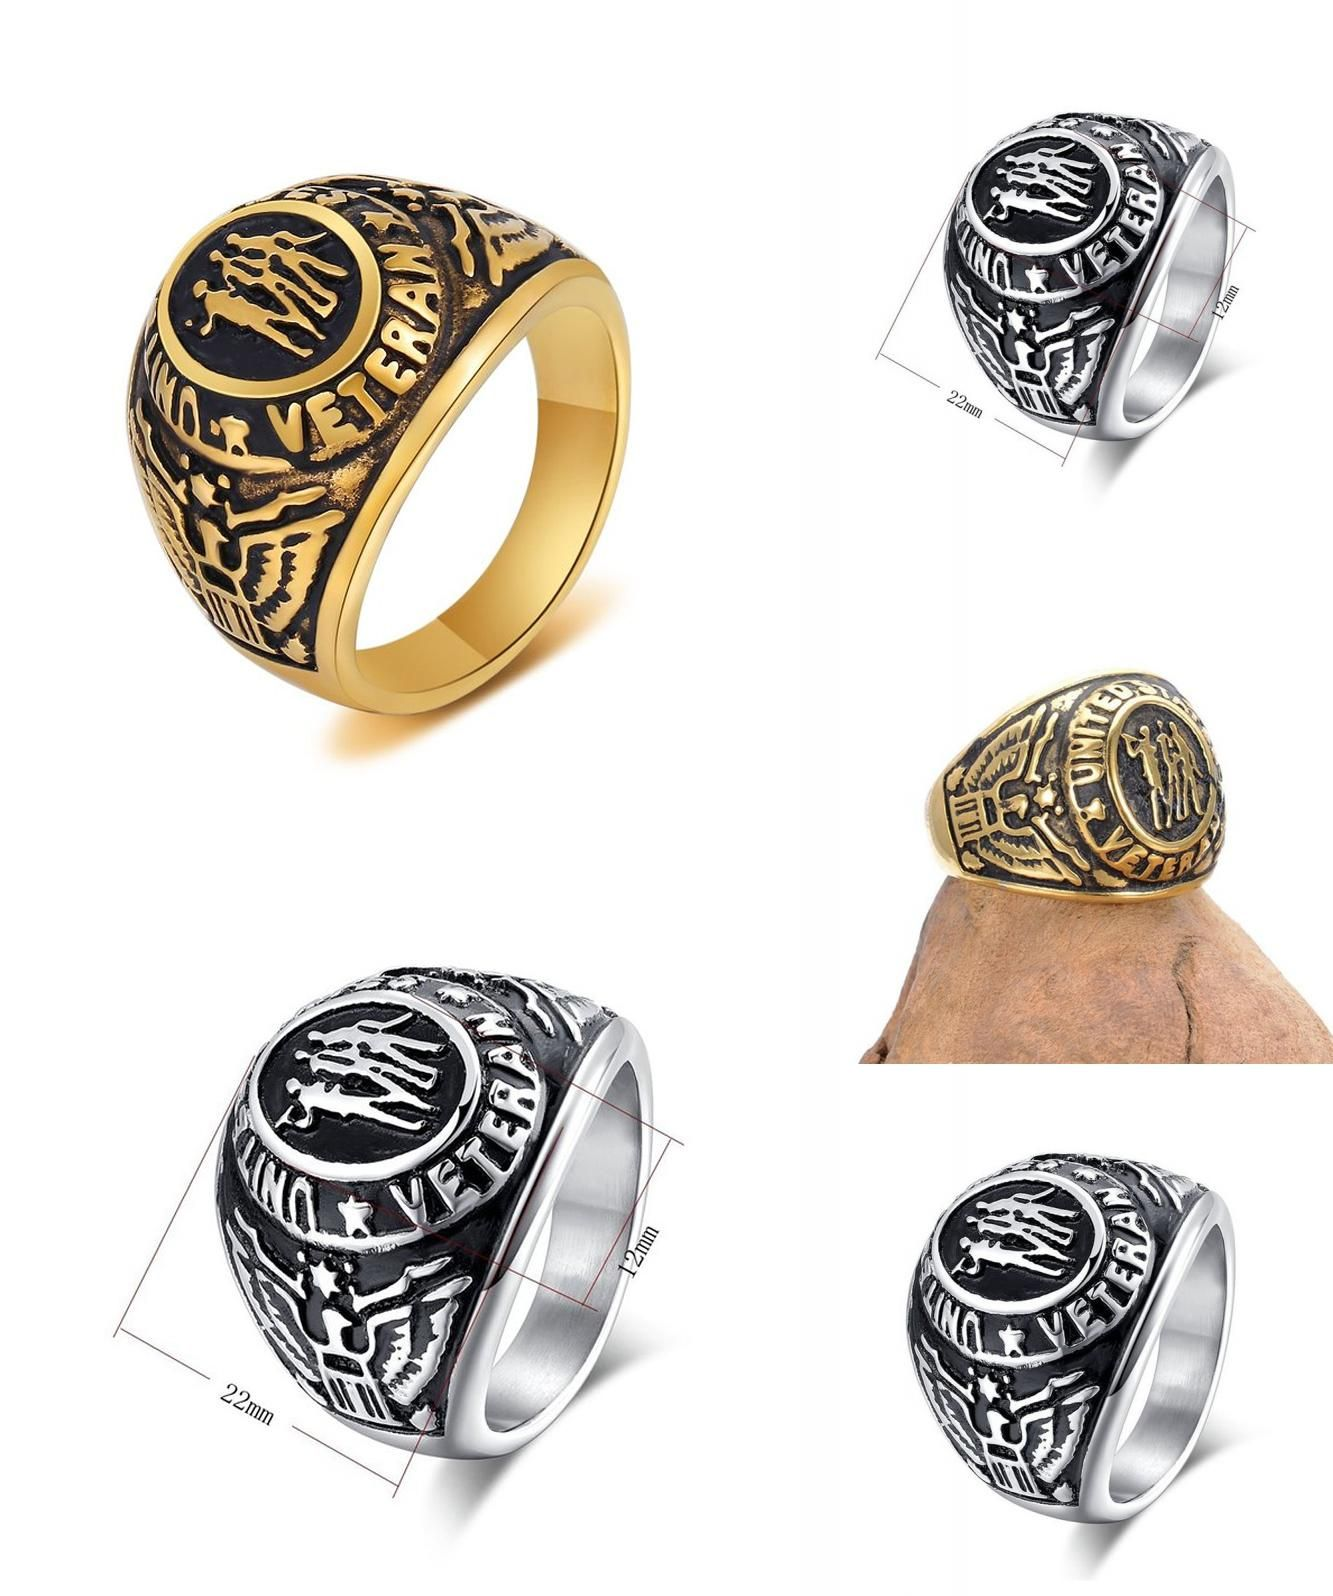 ring steel gift rings mens military collections us com products stainless veterans hood army